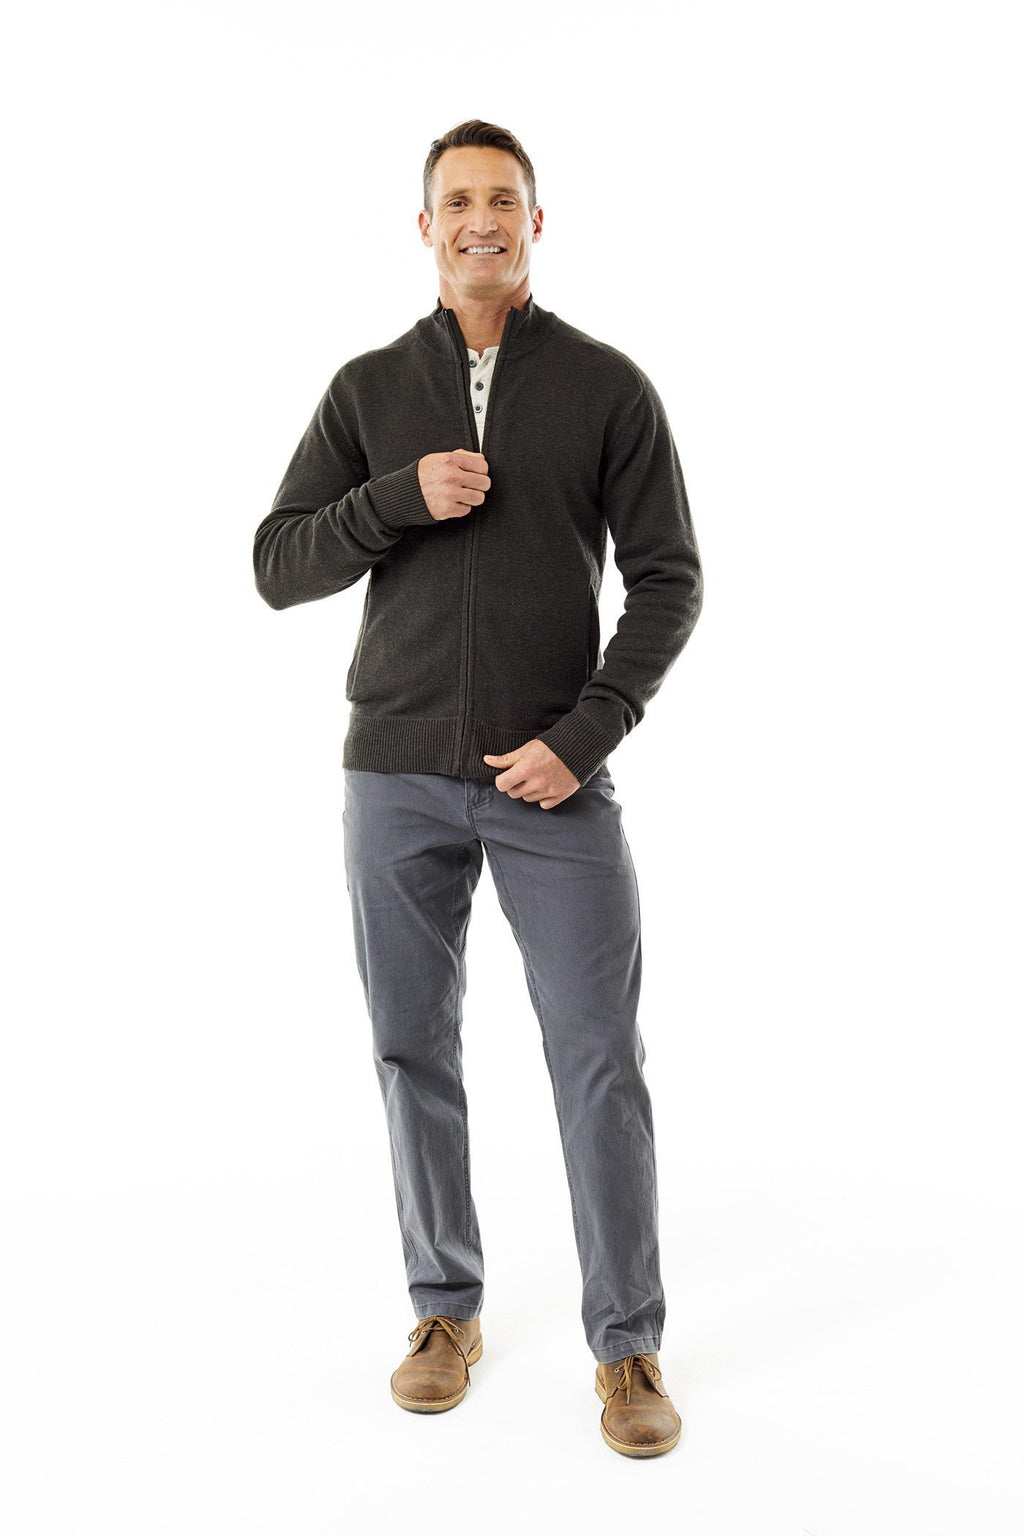 products/F18_47158_ALL_SEASON_MERINO_TRACK_JACKET_LODEN_3929_23eed19b-4925-4733-bc55-50e73aaf5cd2.jpg